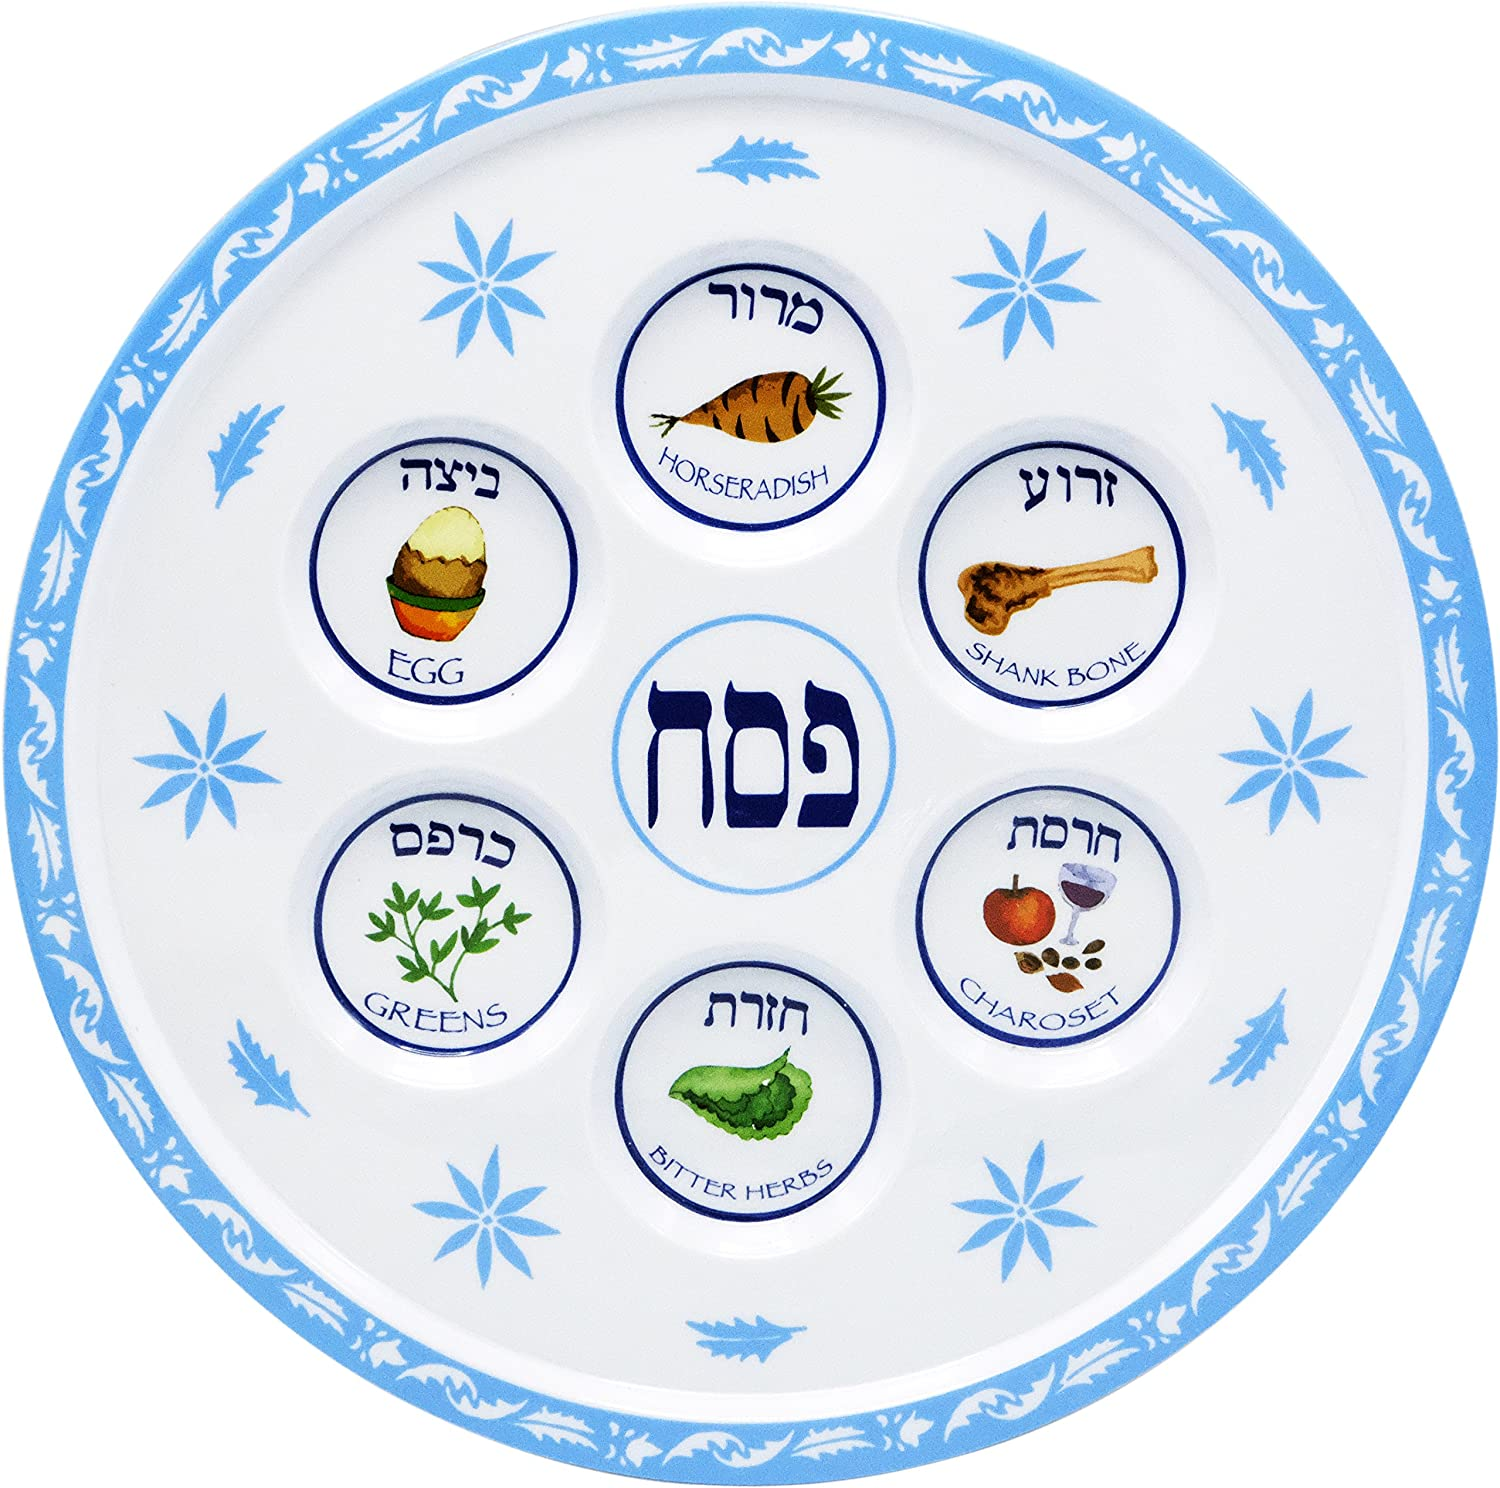 Max 61% OFF Tampa Mall Seder Plate Passover Design Melamine Floral